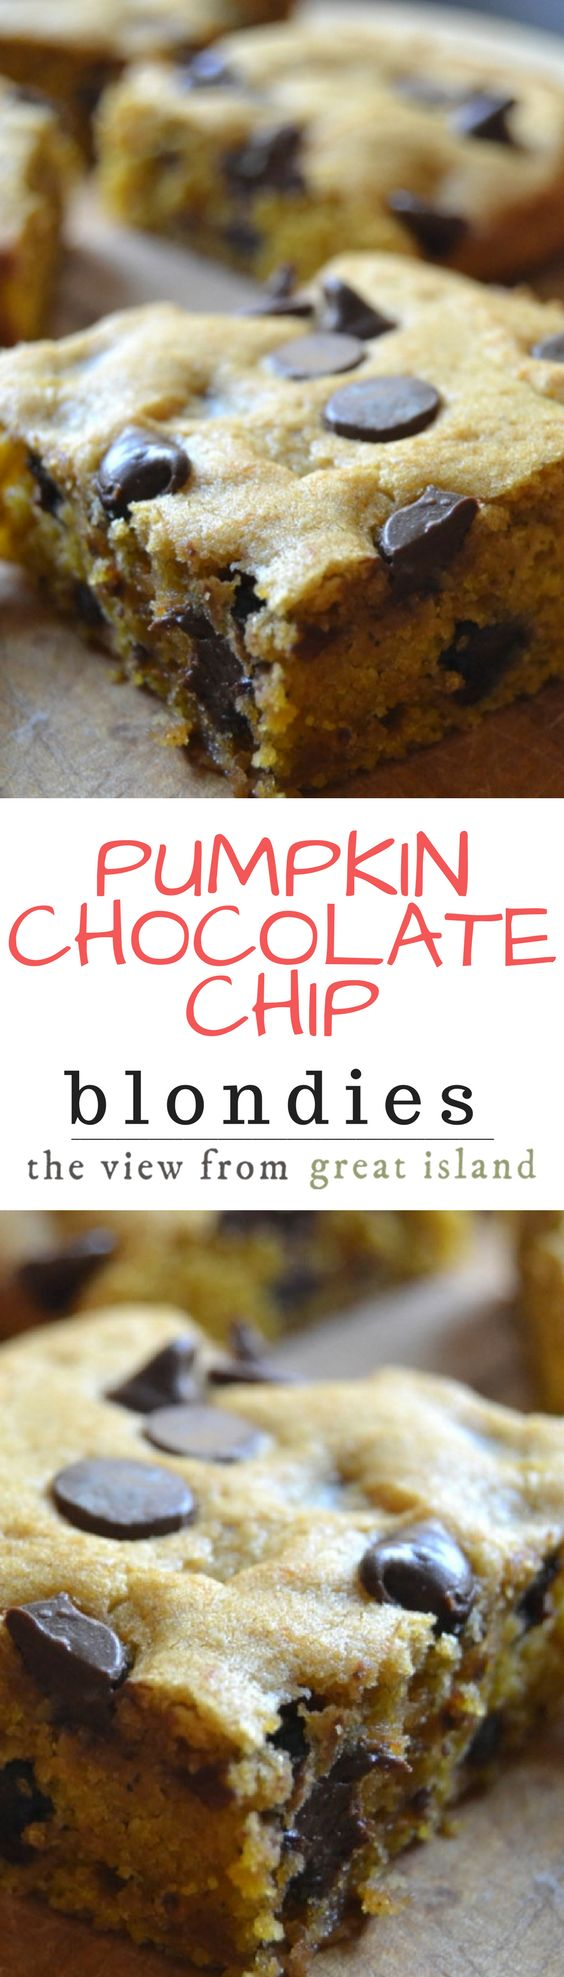 Run, don't walk, to your kitchen to whip up a batch of these insanely tender and delicious Pumpkin Chocolate Chip Blondies ~ this easy pumpkin dessert is a big hit with everybody! | chocolate chips | pumpkin | fall dessert | brownies | bars |